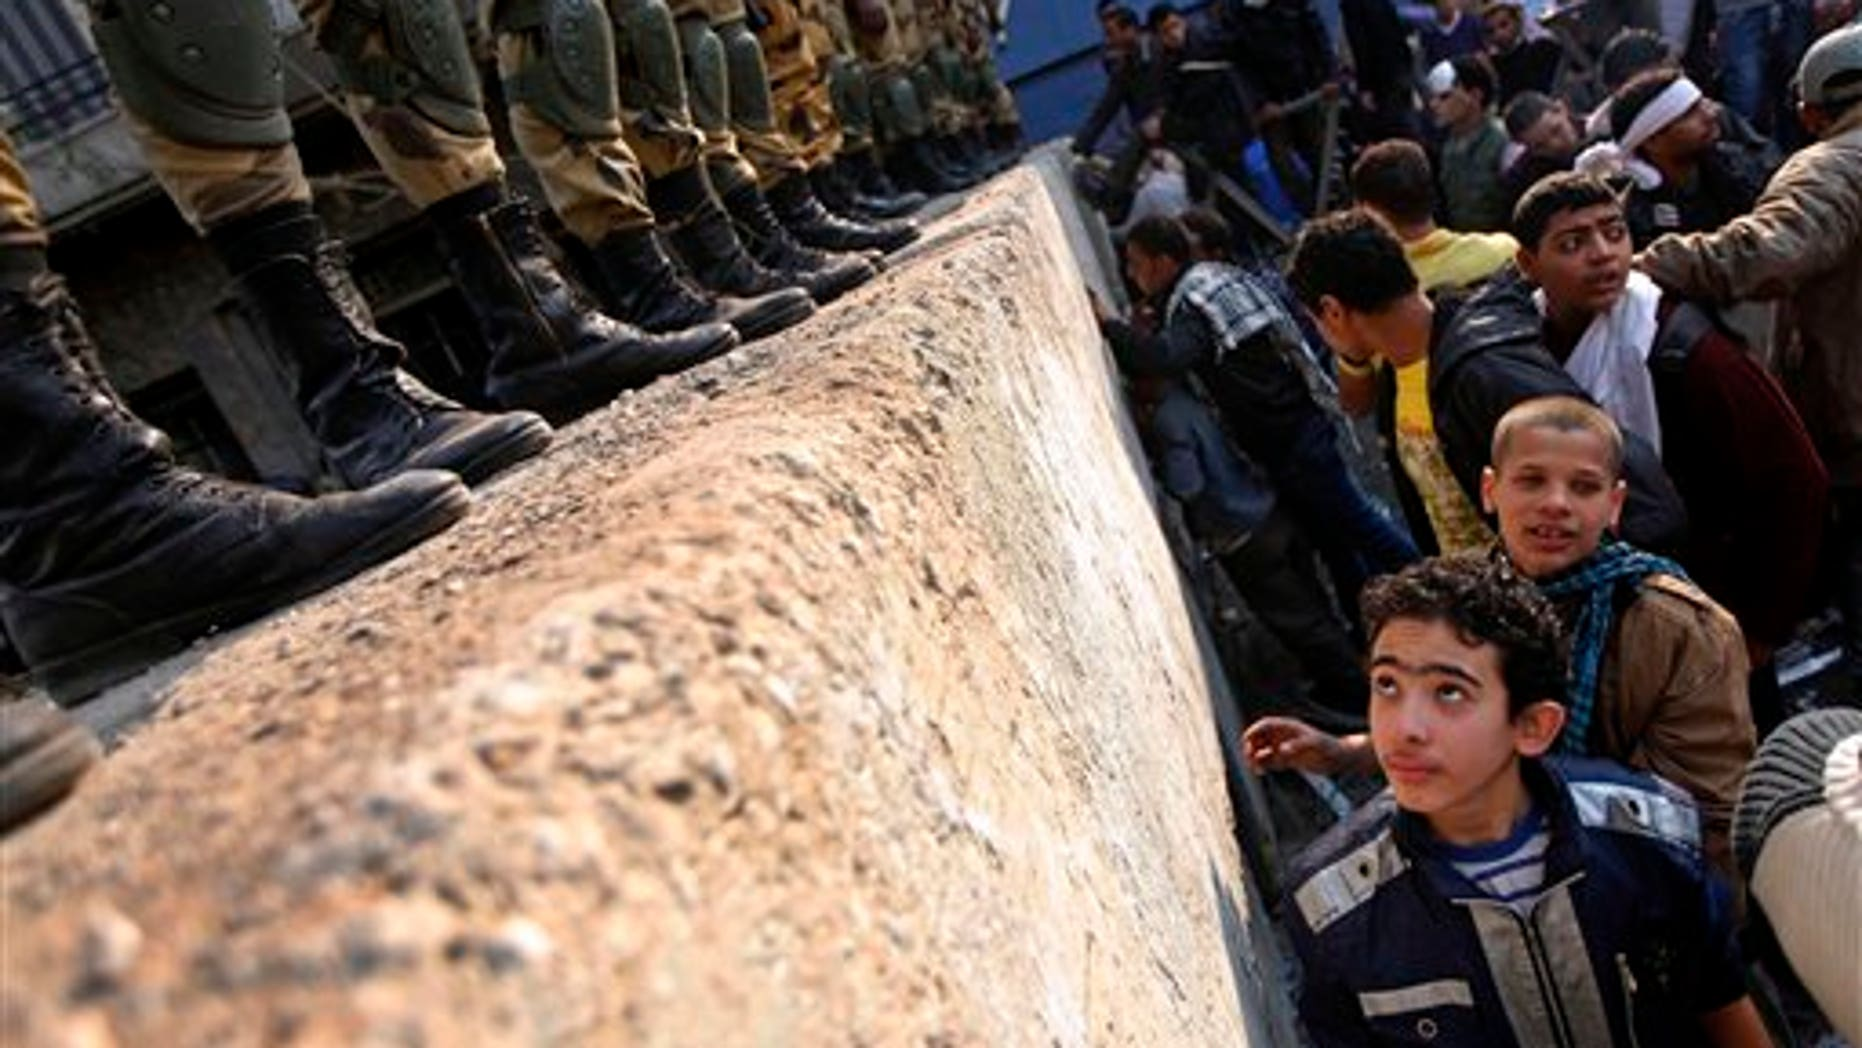 November 24, 2011: A boy looks at Egyptian Army soldiers standing guard atop a concrete block barricade on the street between Tahrir Square and the interior ministry in Cairo, Egypt.